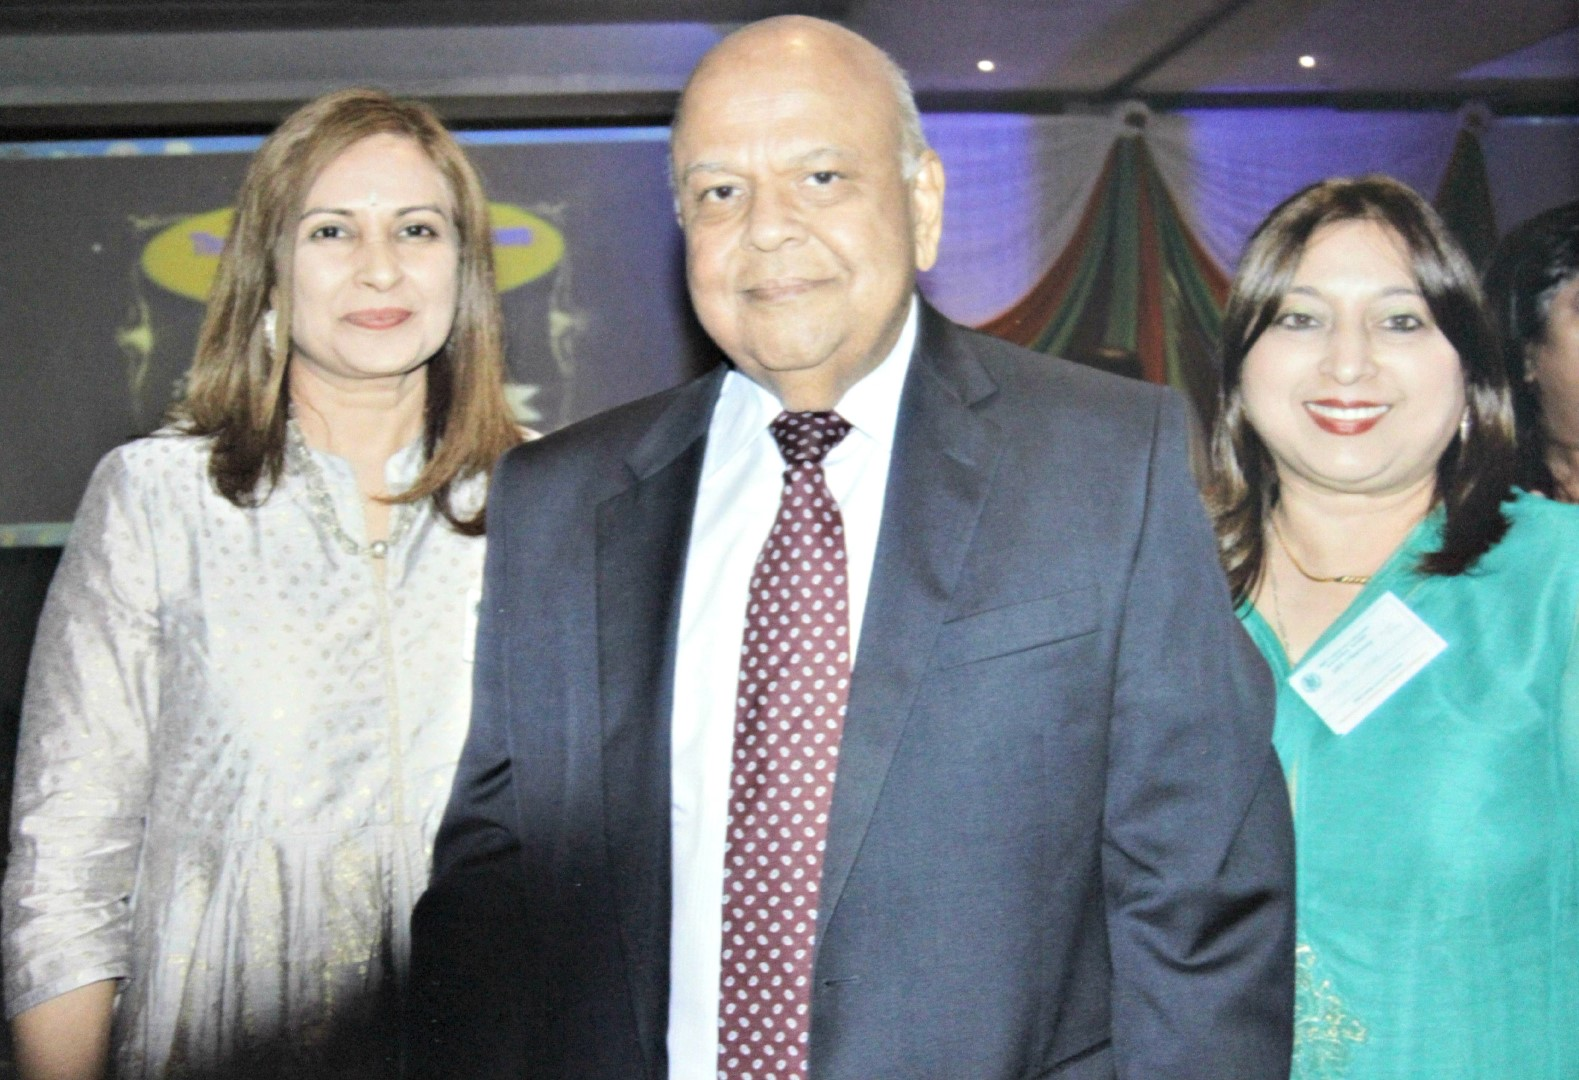 At the celebration are Minister of Public Enterprise Mr Pravin Gordhan with UKZN's Dr Gerelene Jagganath (left) and Professor Shanta Balgobind Singh.